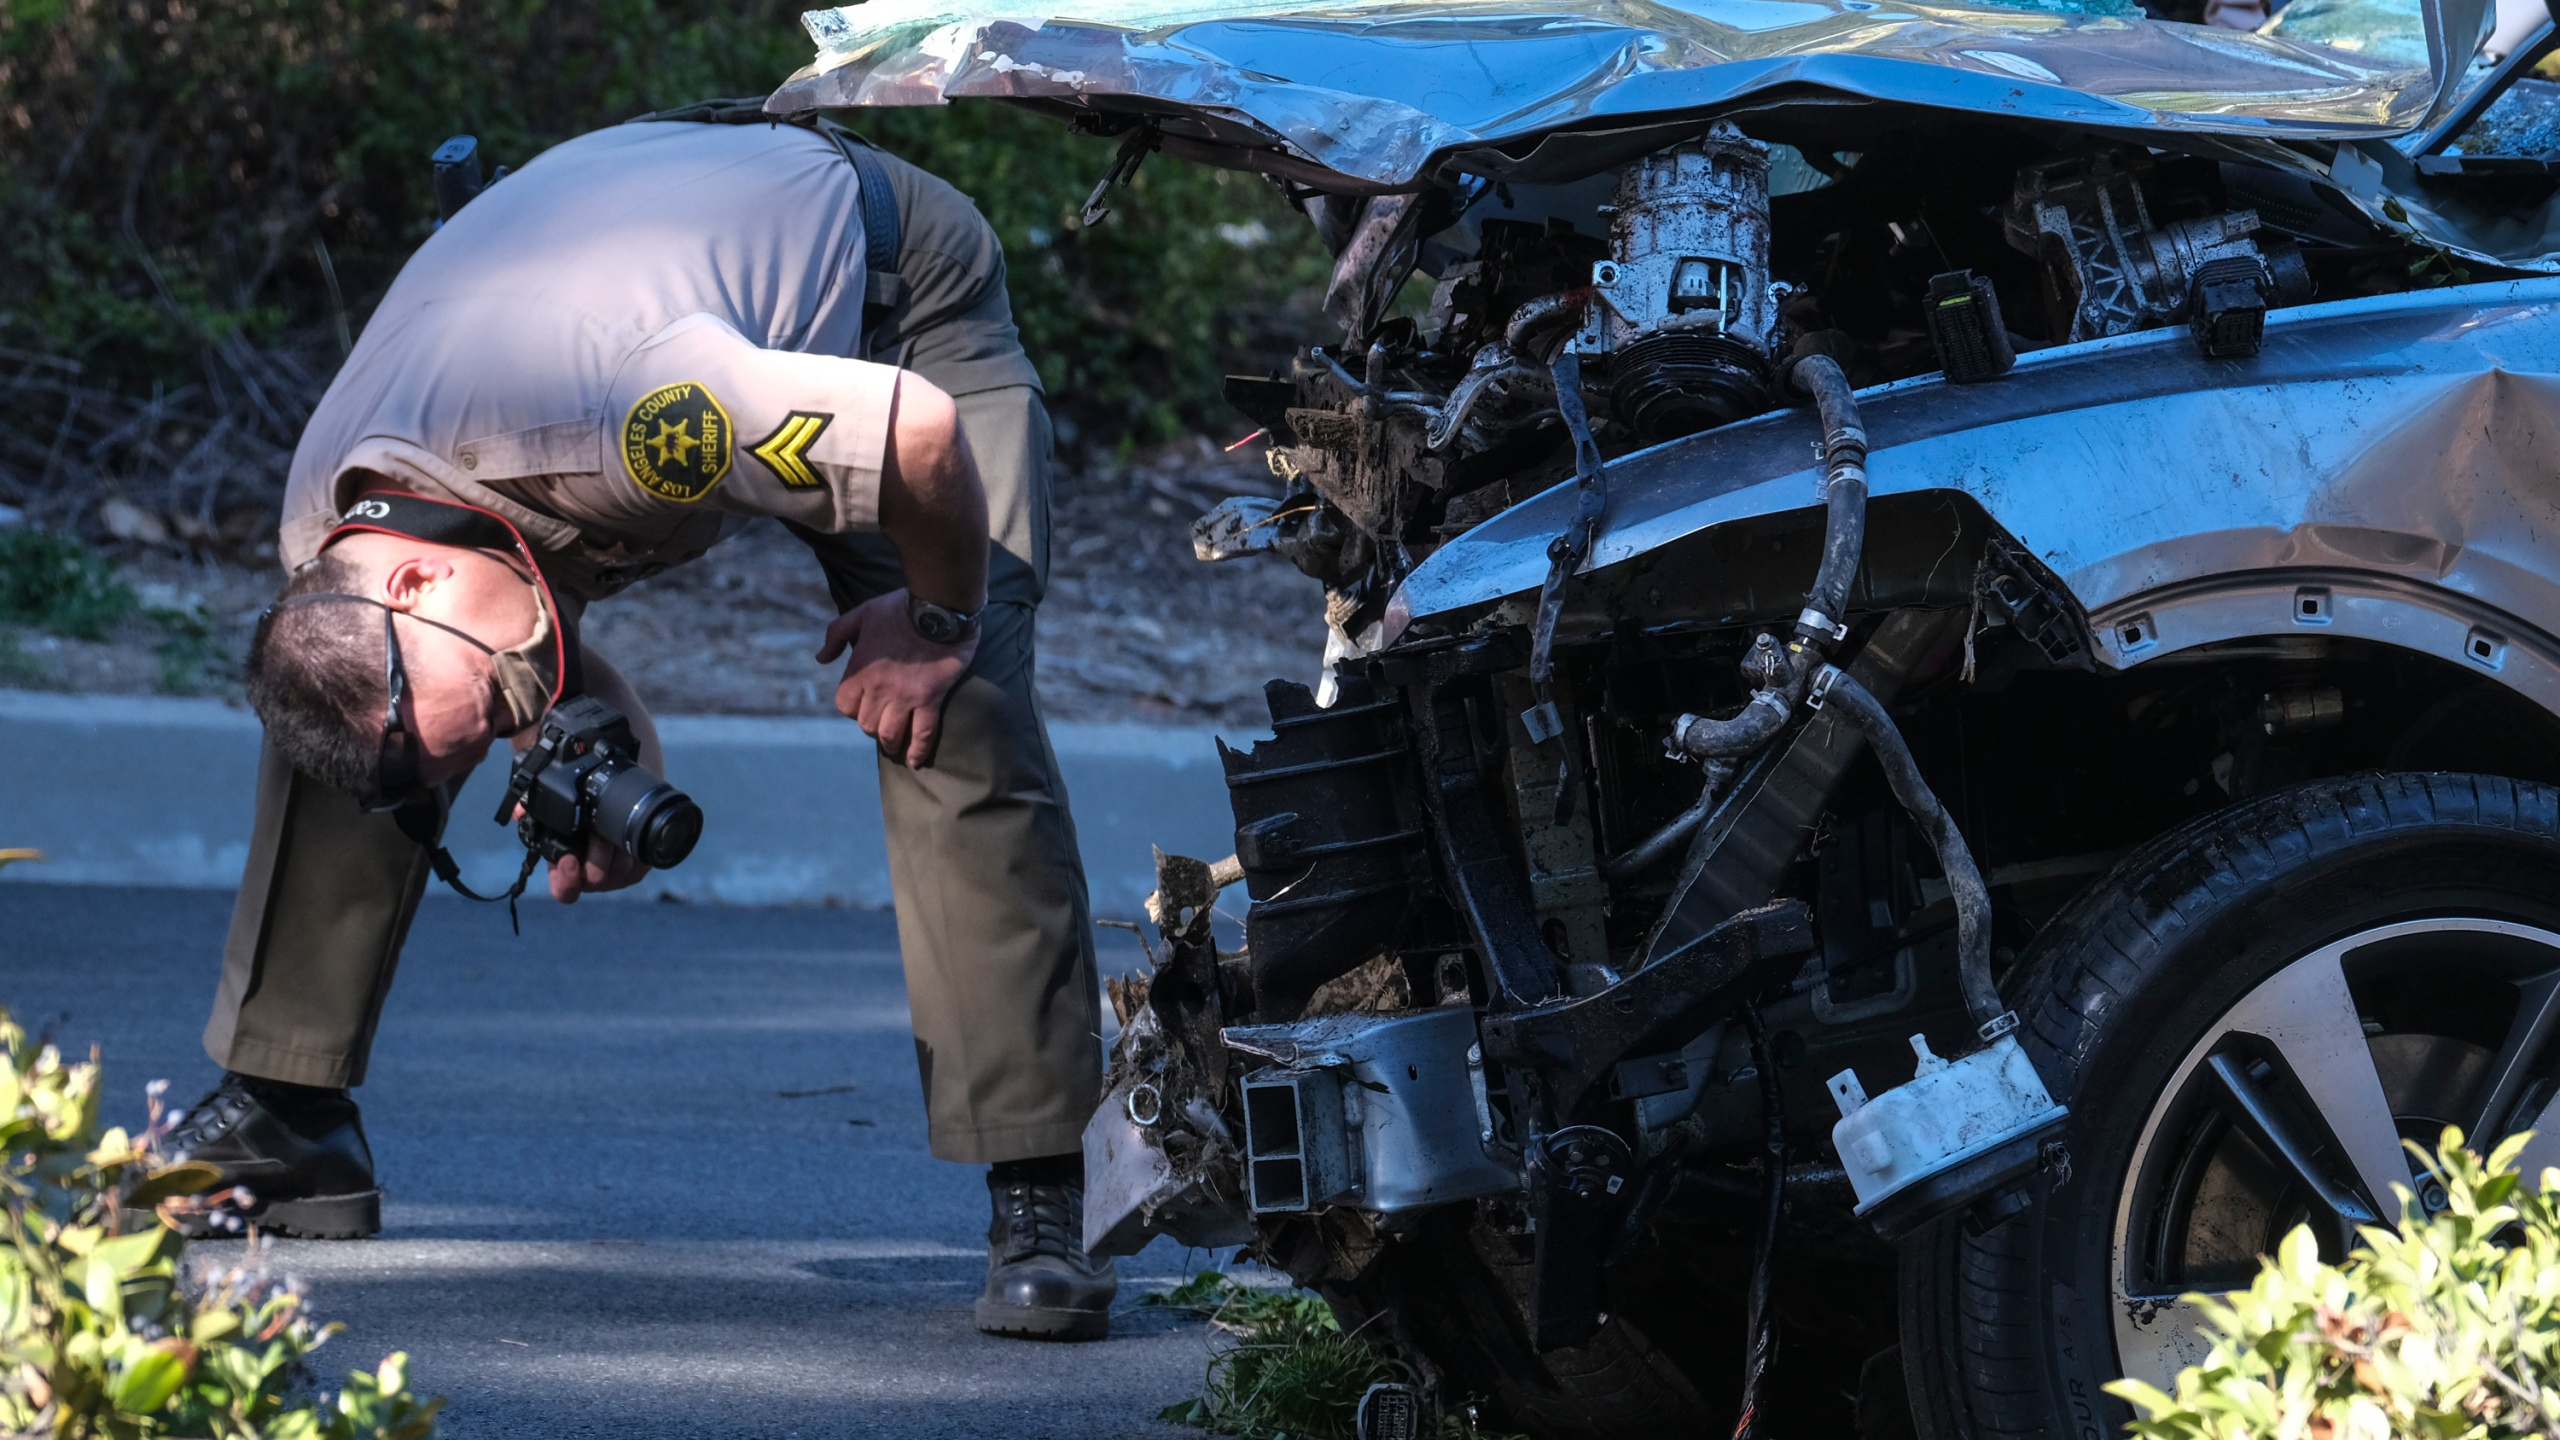 A law enforcement officer looks over a damaged vehicle following a rollover accident involving golfer Tiger Woods on Feb. 23, 2021, in the Rancho Palos Verdes suburb of Los Angeles. (Ringo H.W. Chiu / Associated Press)